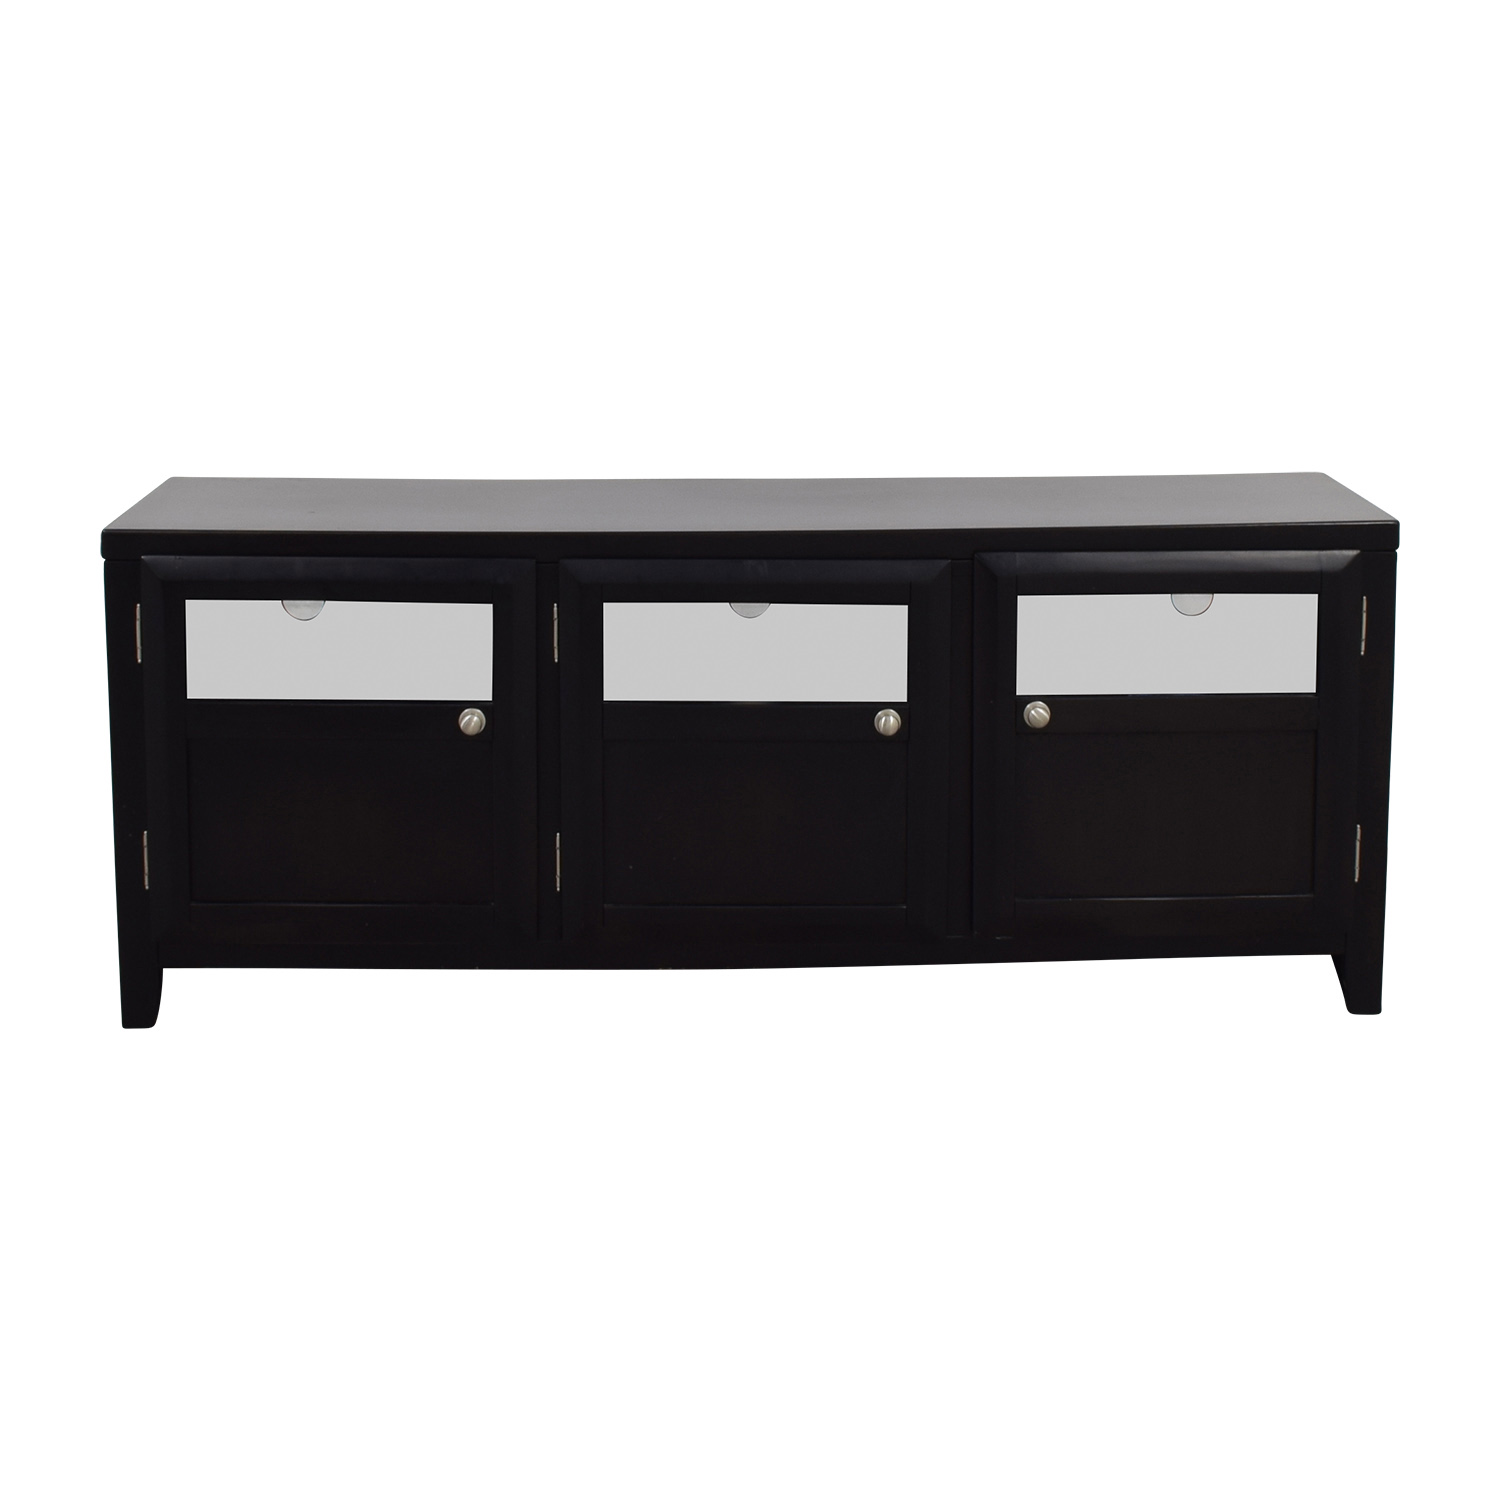 Target Wood & Glass TV Stand sale